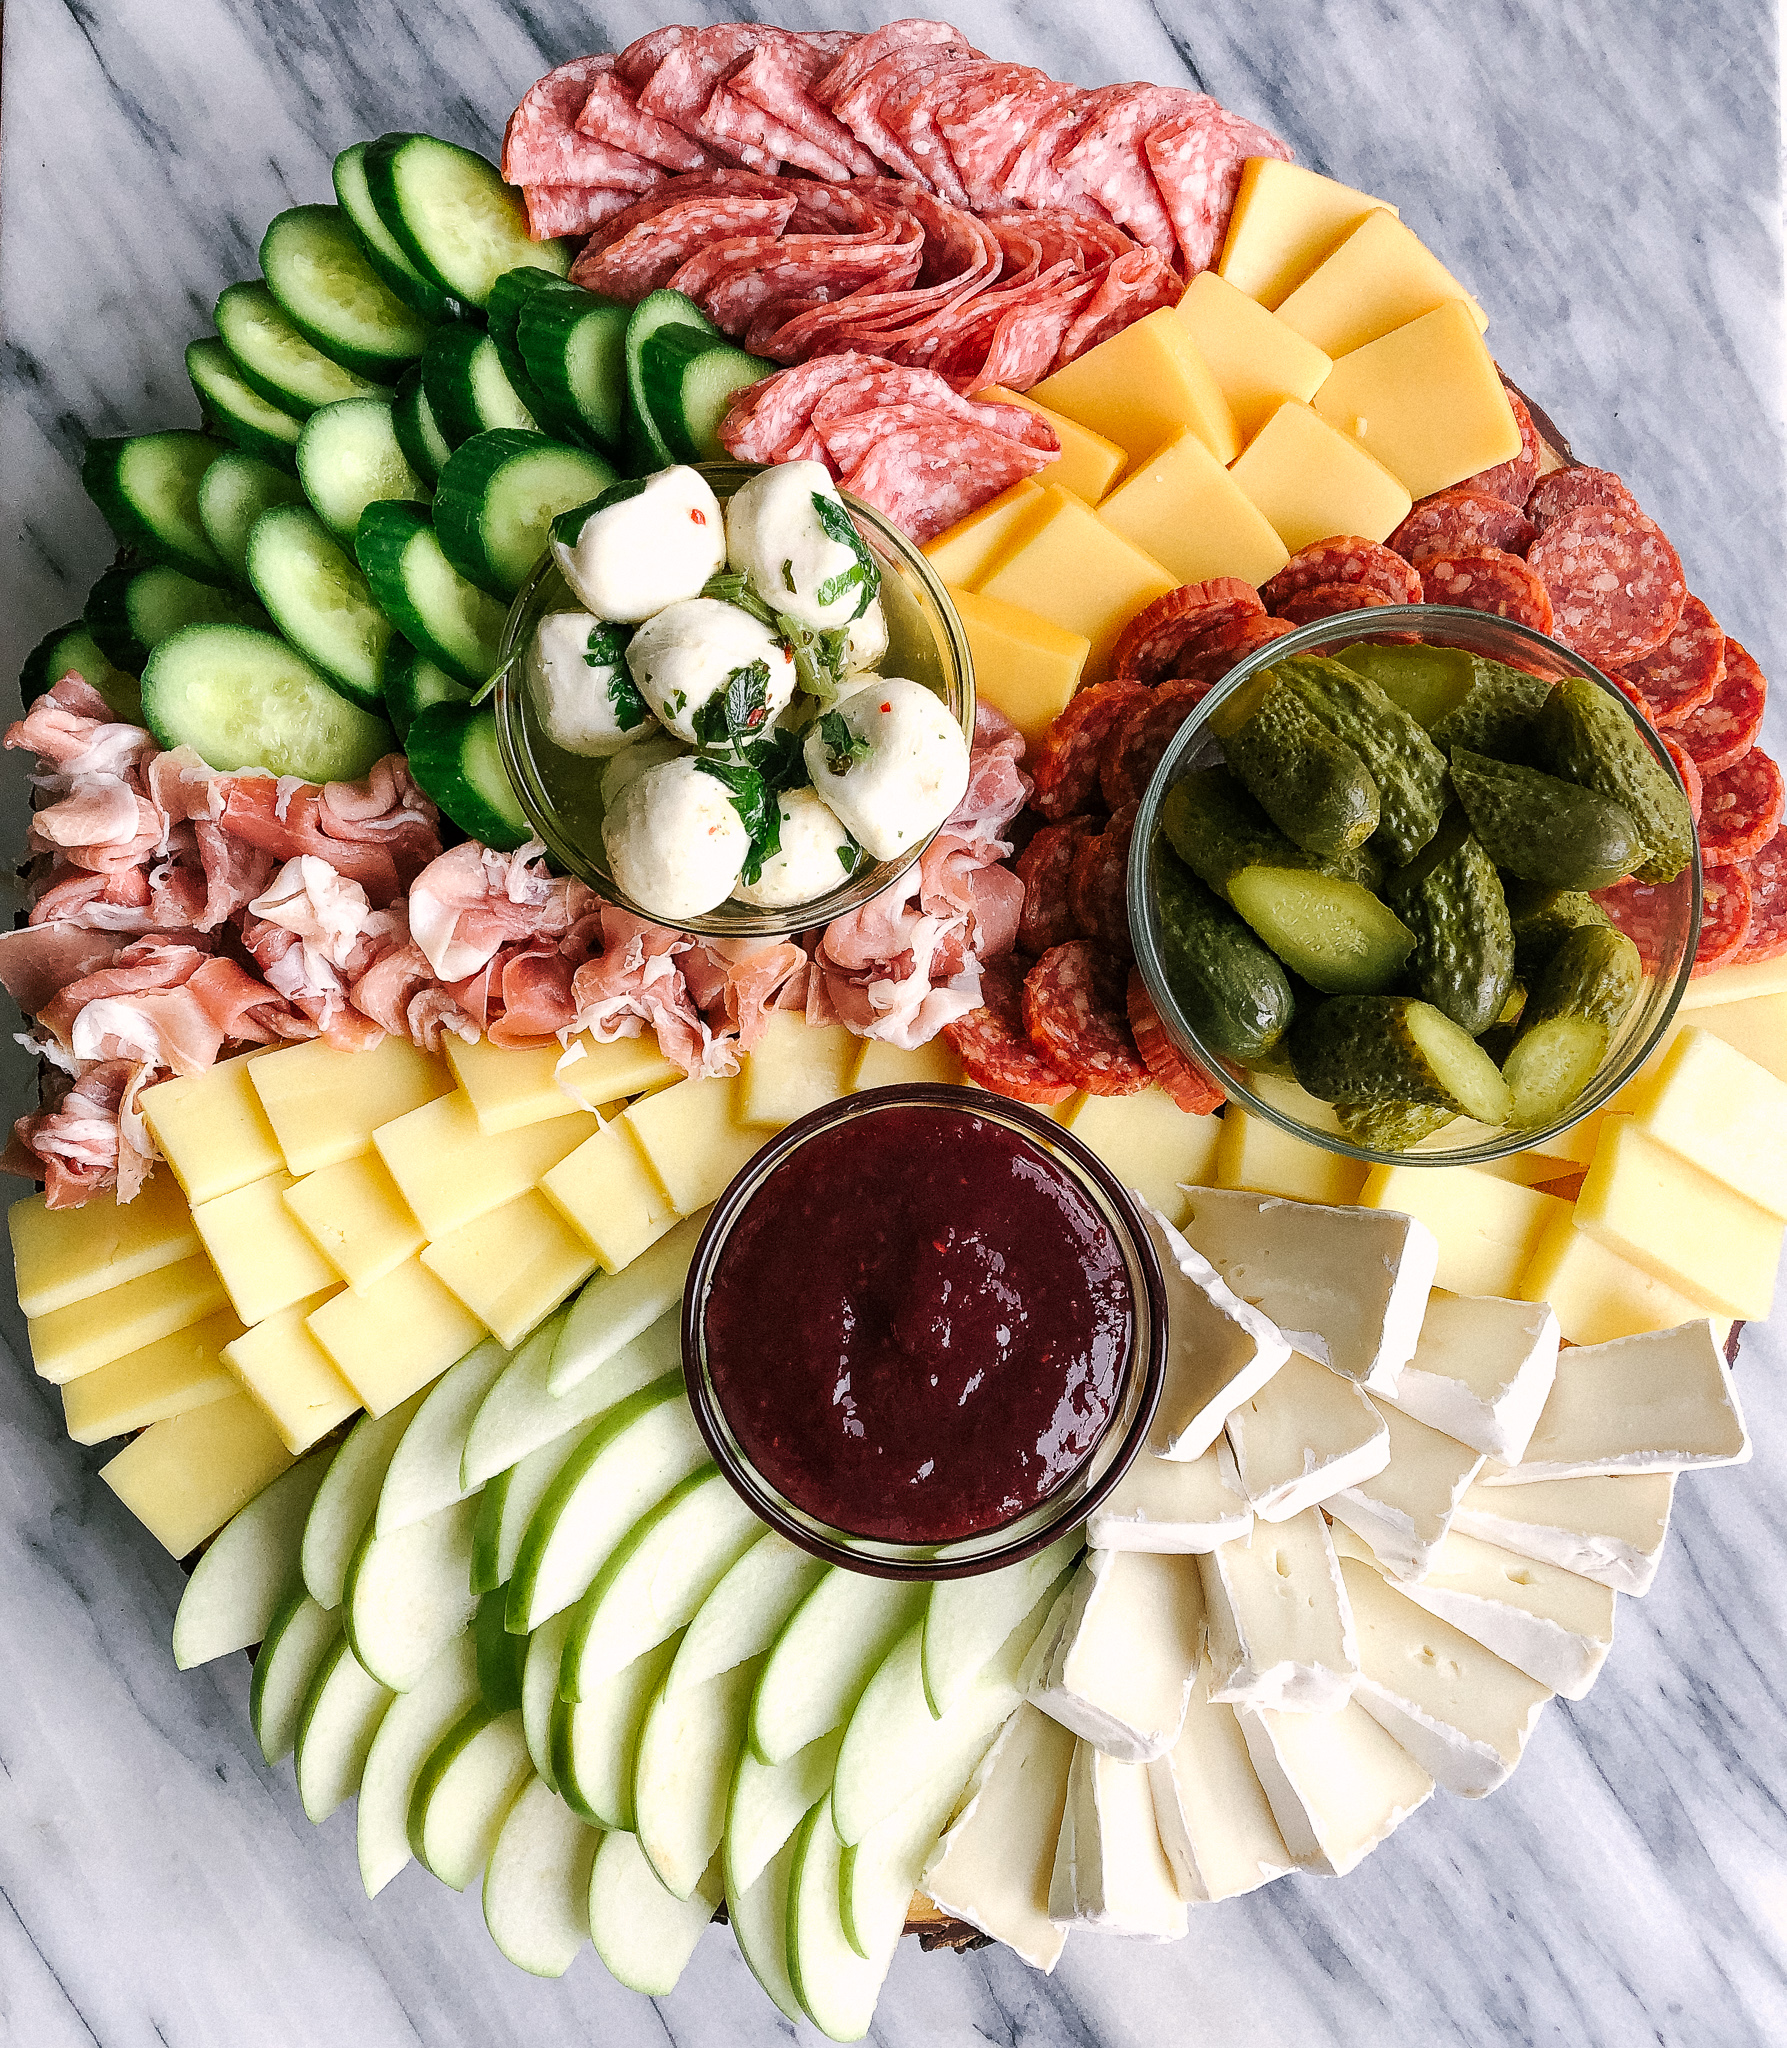 Use this guide to make an epic charcuterie board or cheese plate for your next holiday gathering or party with family and friends!